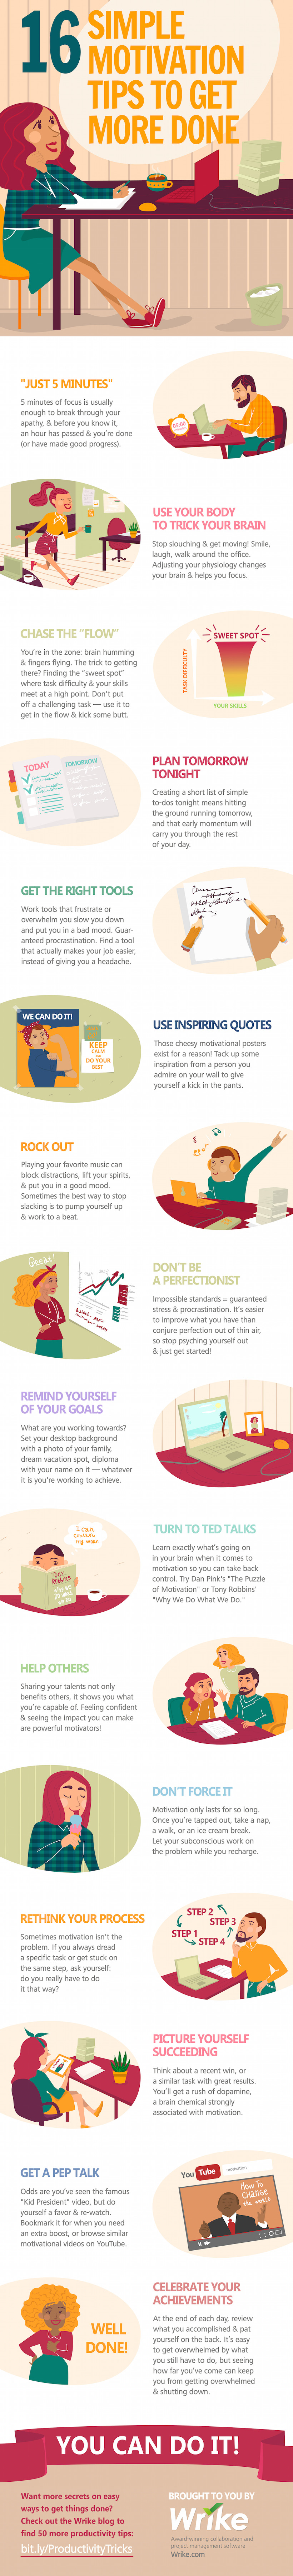 16 Simple Motivation Tips to Get More Done (#Infographic)